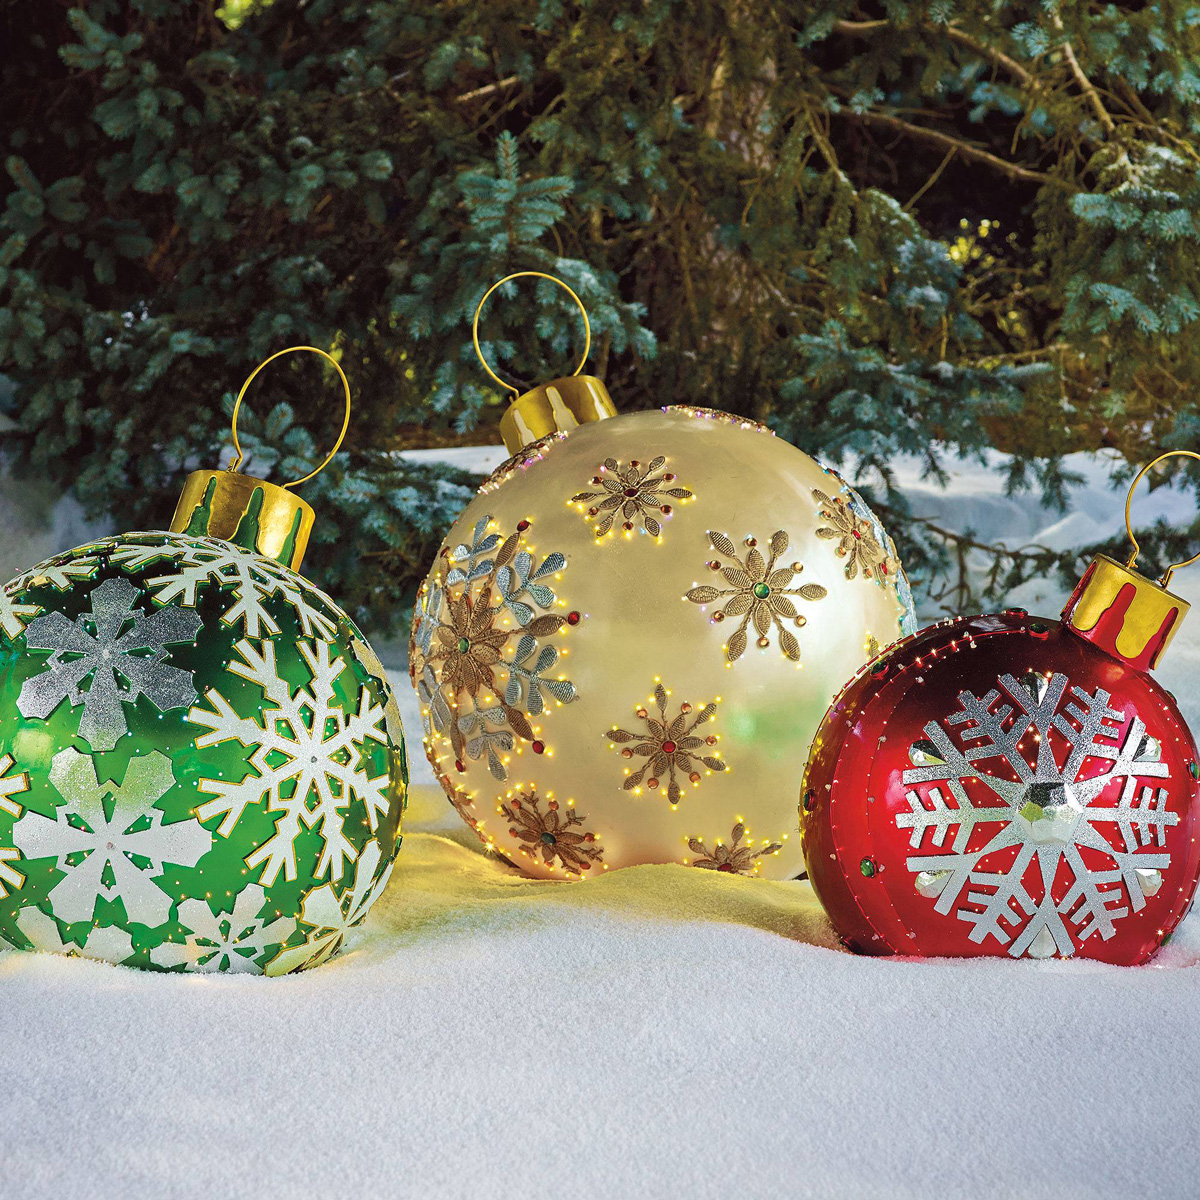 Massive Fiber-Optic LED Outdoor Christmas Ornaments